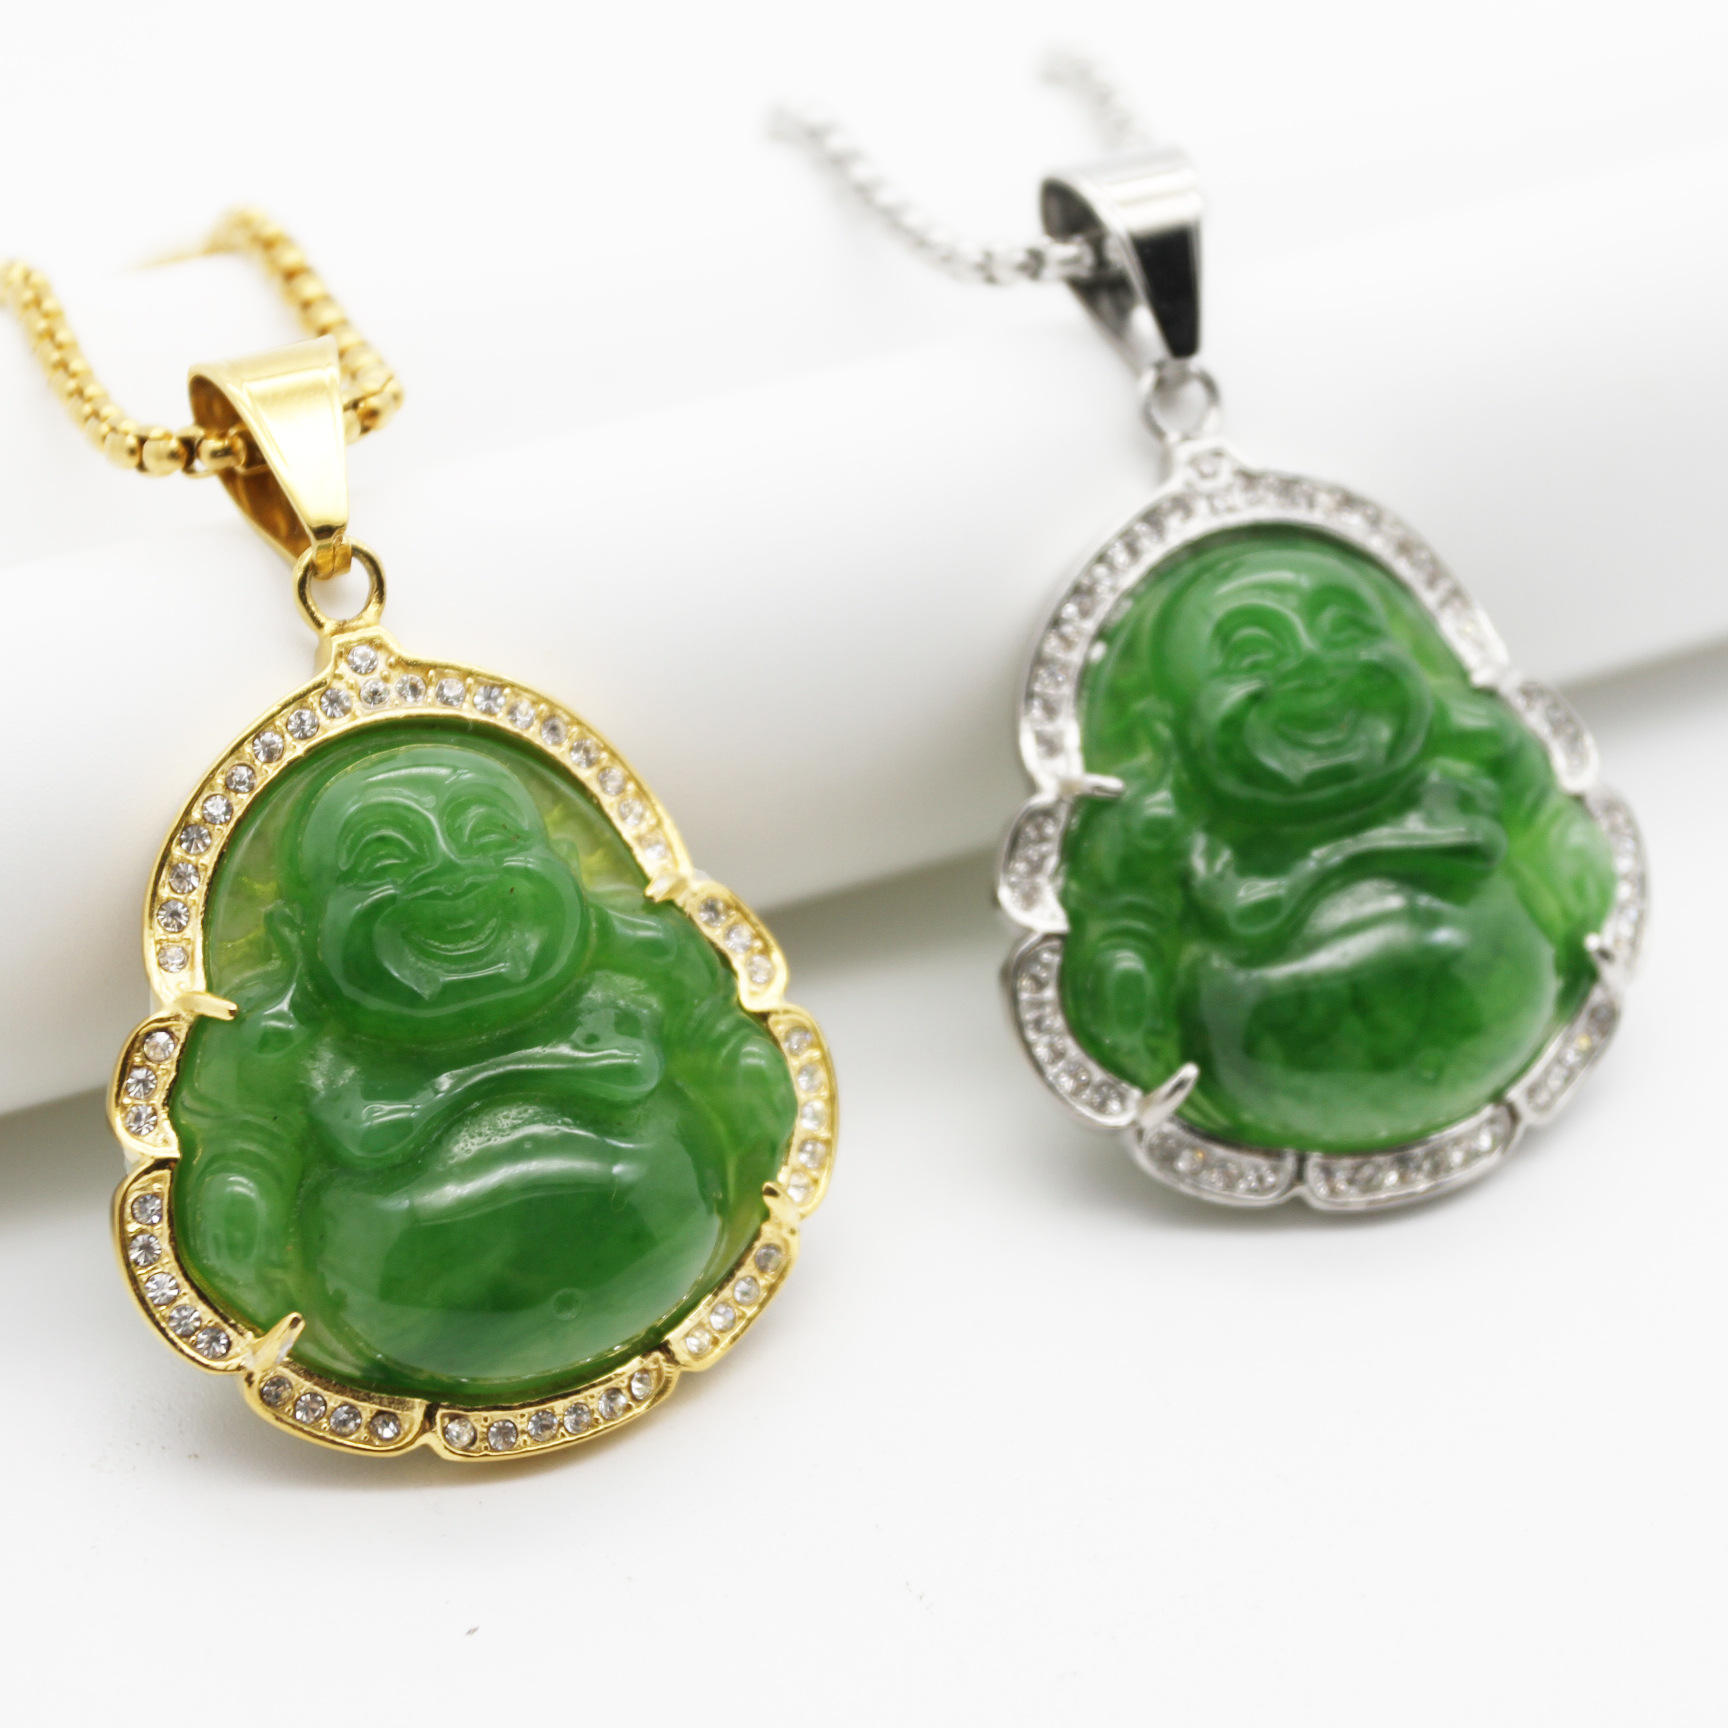 New stainless steel green agate laughing buddha pendant necklace